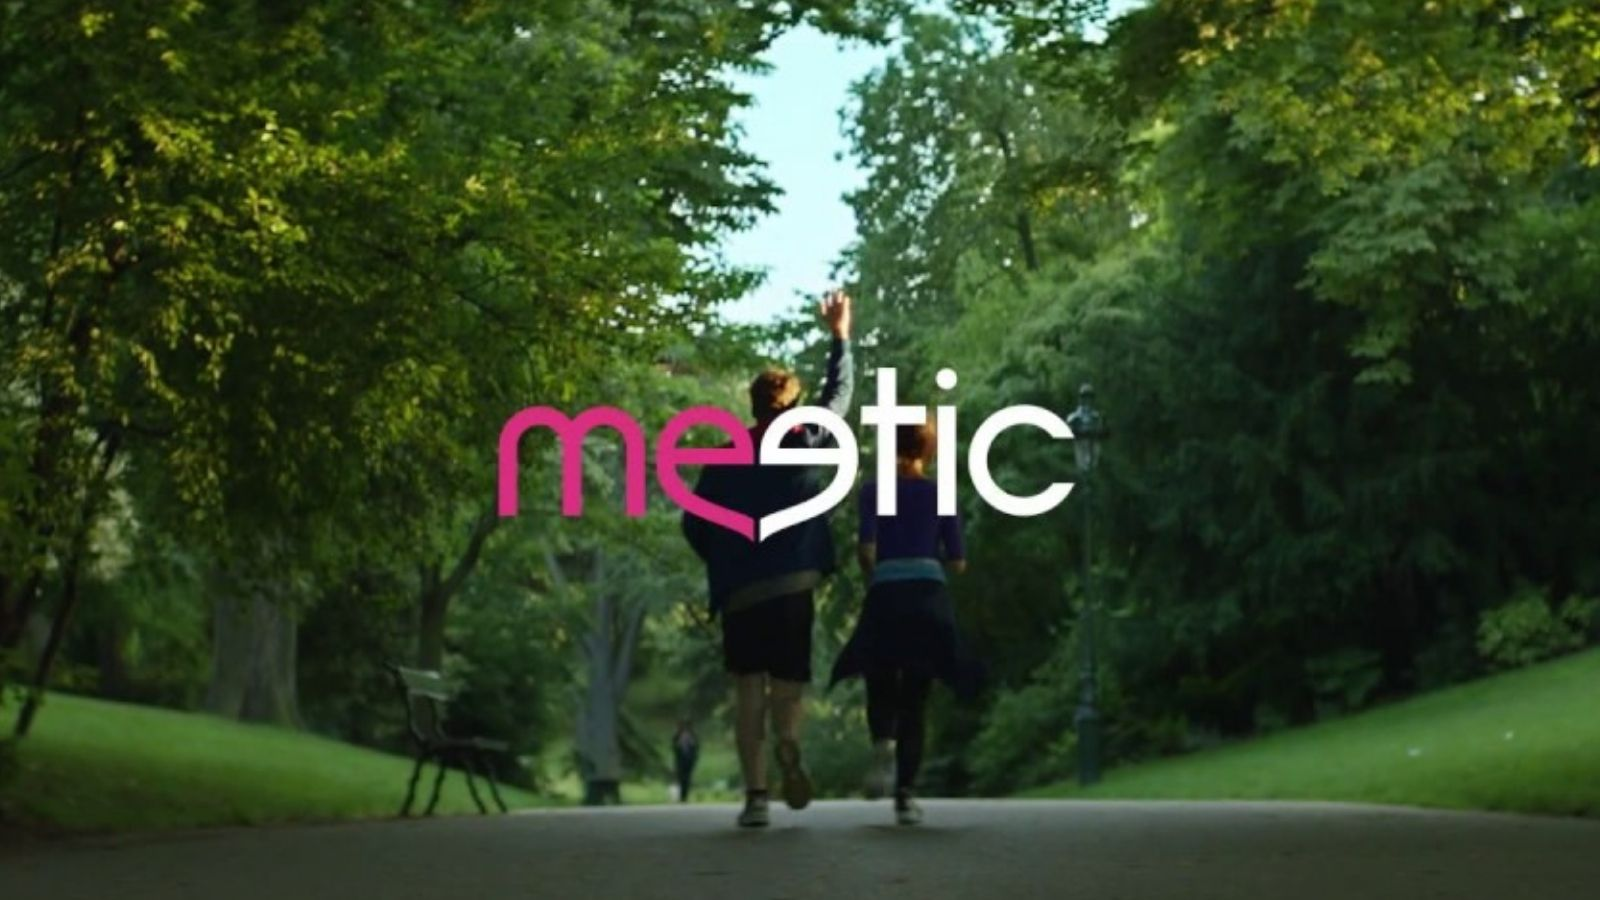 Meetic copy over couple running on treed path